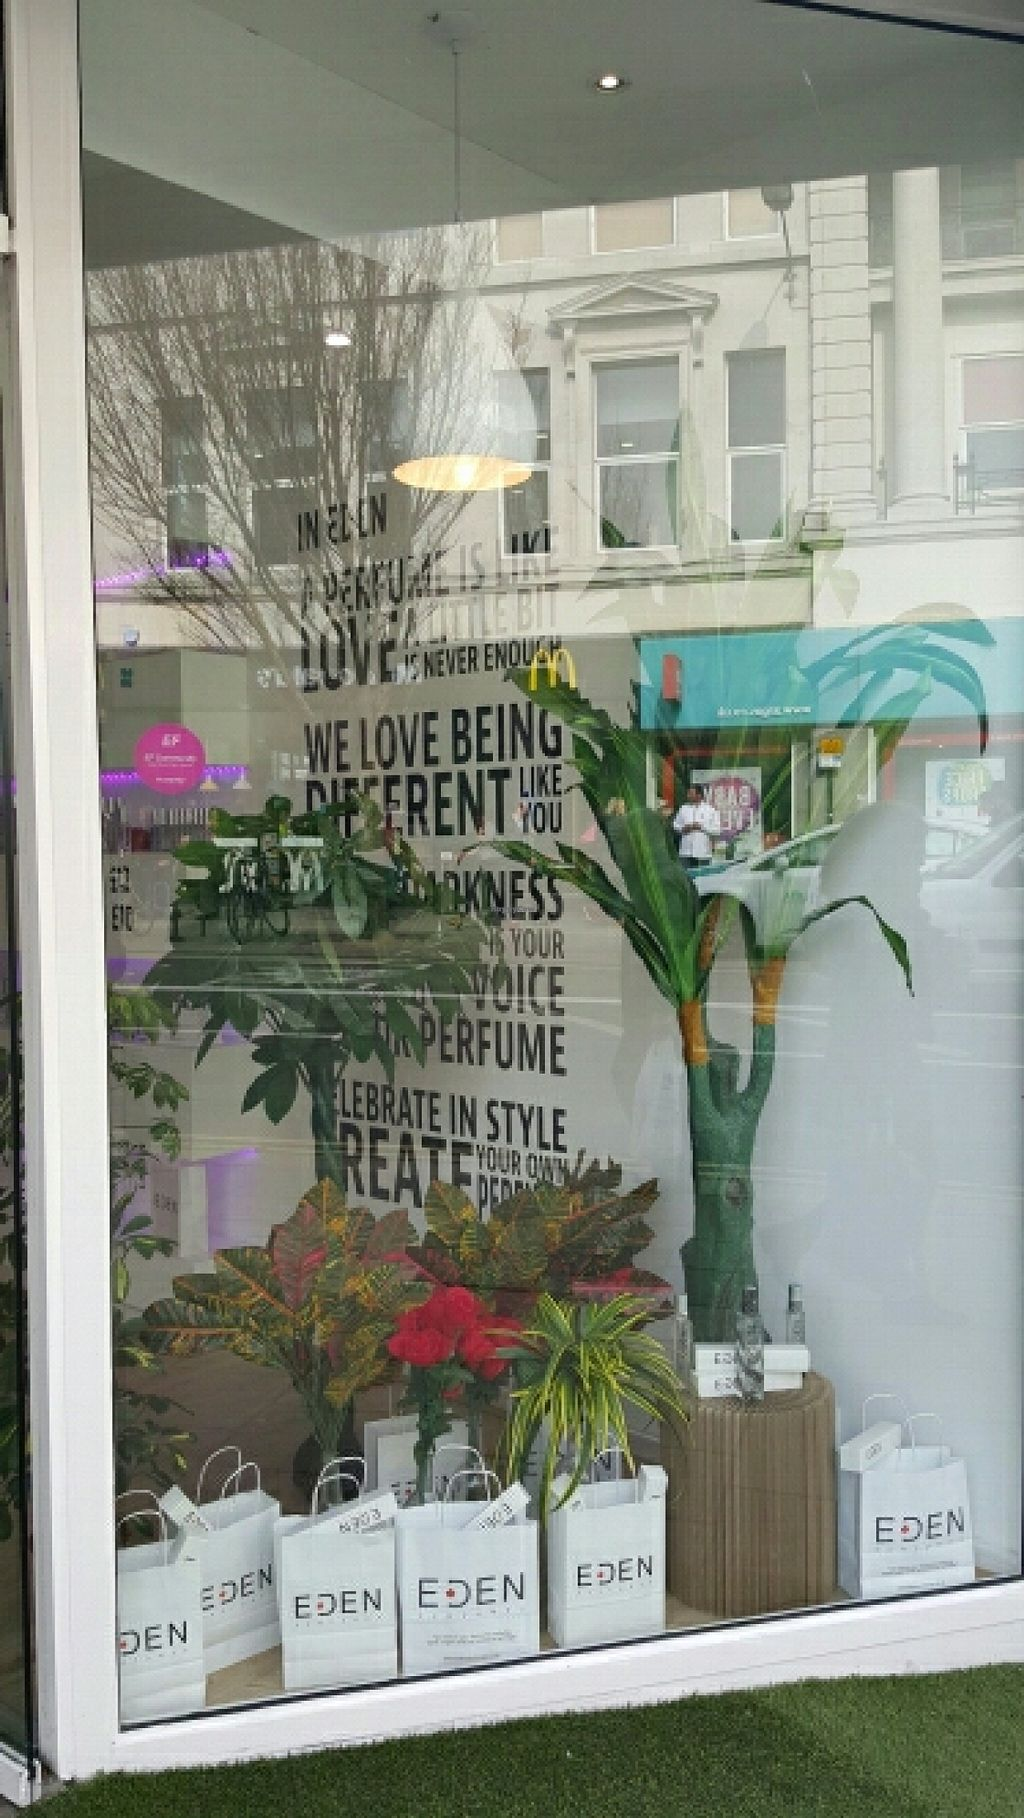 """Photo of Eden Perfumes - Western Rd  by <a href=""""/members/profile/Clare"""">Clare</a> <br/>window display <br/> March 12, 2016  - <a href='/contact/abuse/image/70807/139736'>Report</a>"""